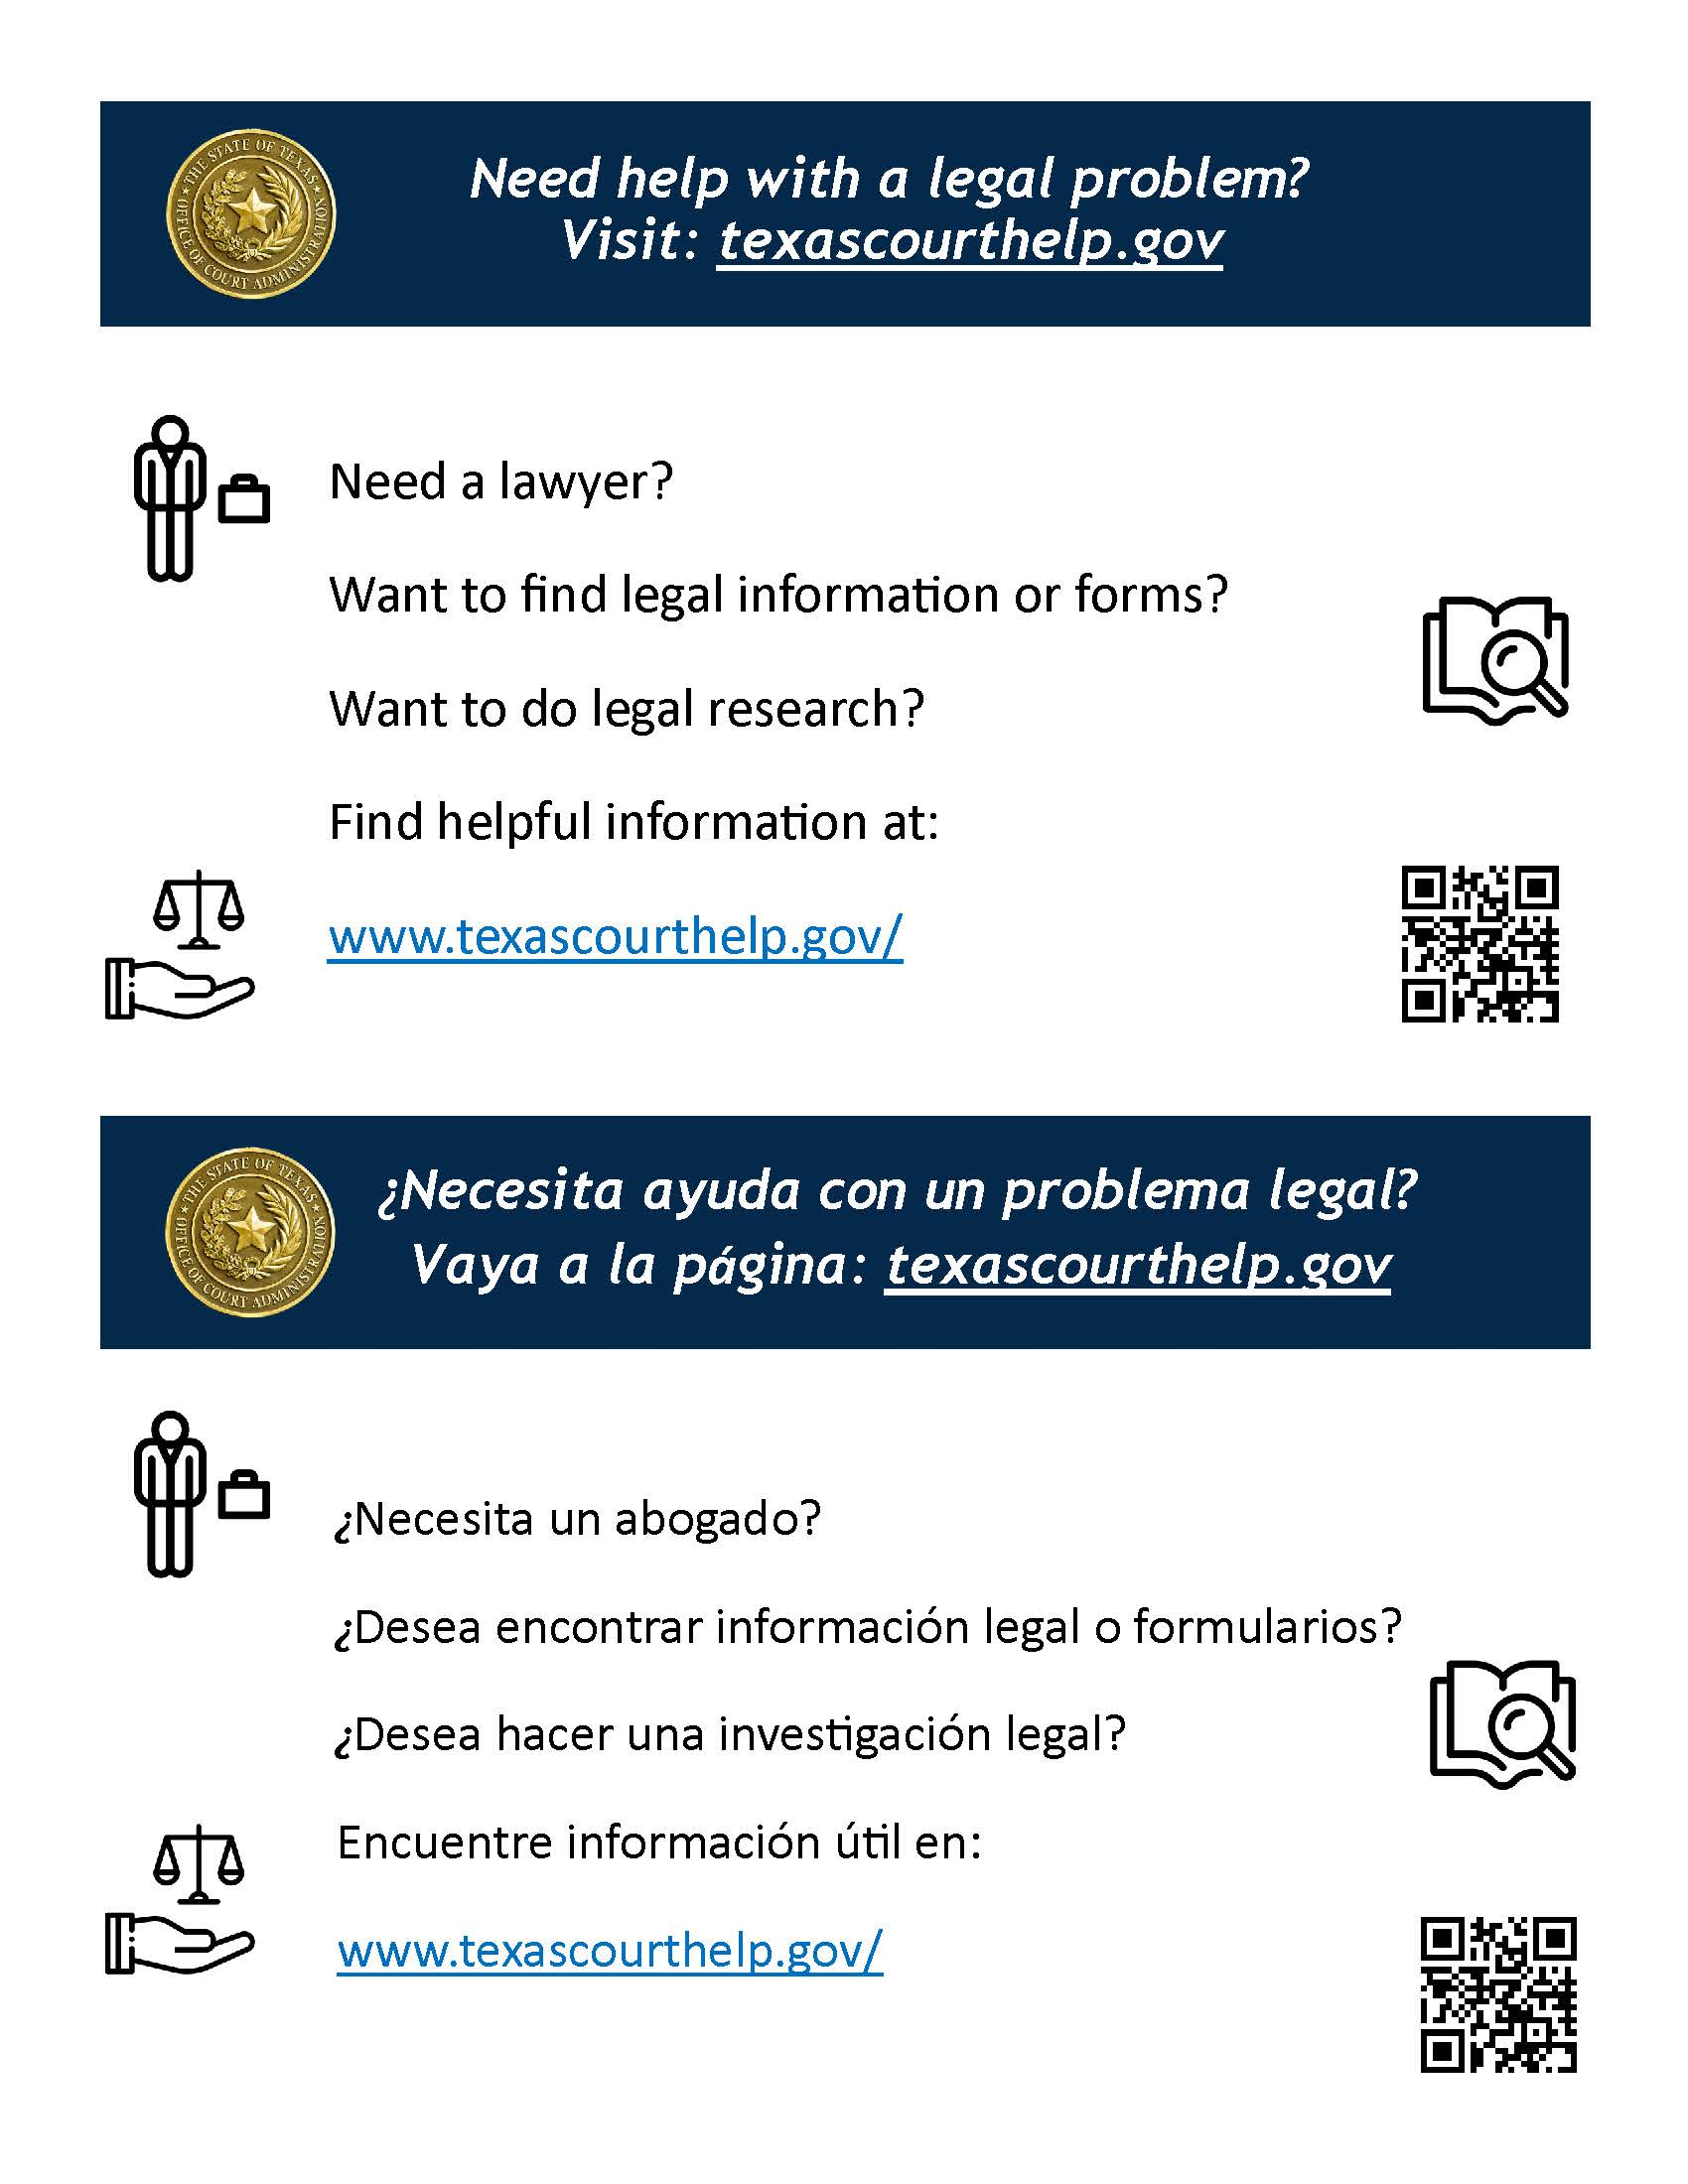 Need Help with Legal Advice Flyer